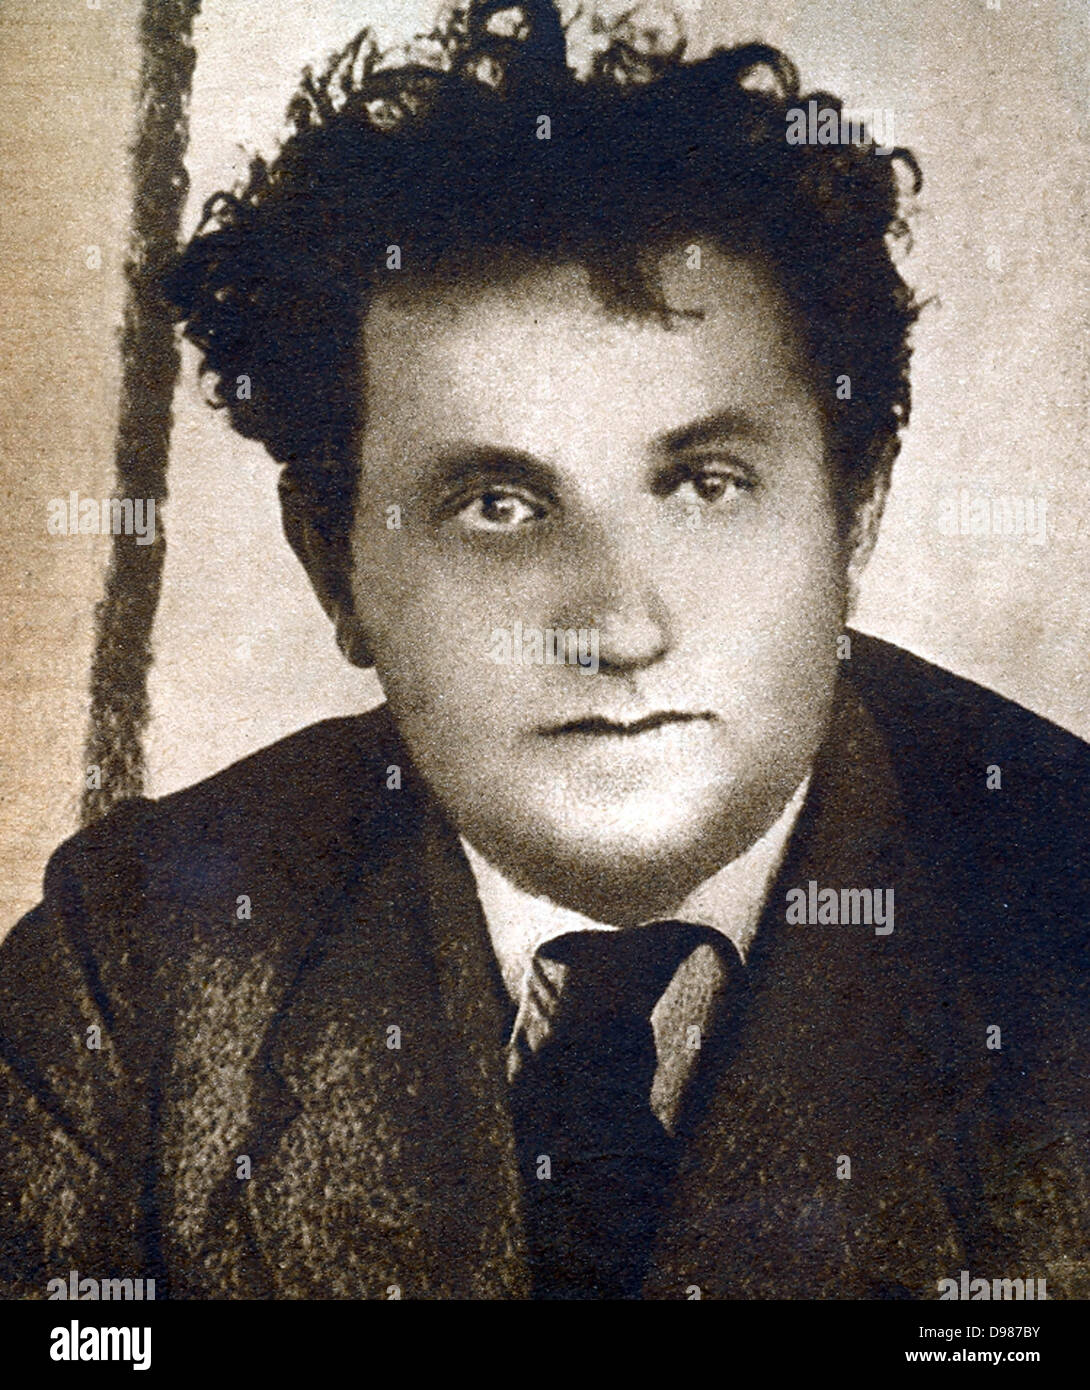 Grigory Zinoviev (1883-1936), prominent member of the Russian Communist Party. Charged with forming a terrorist - Stock Image